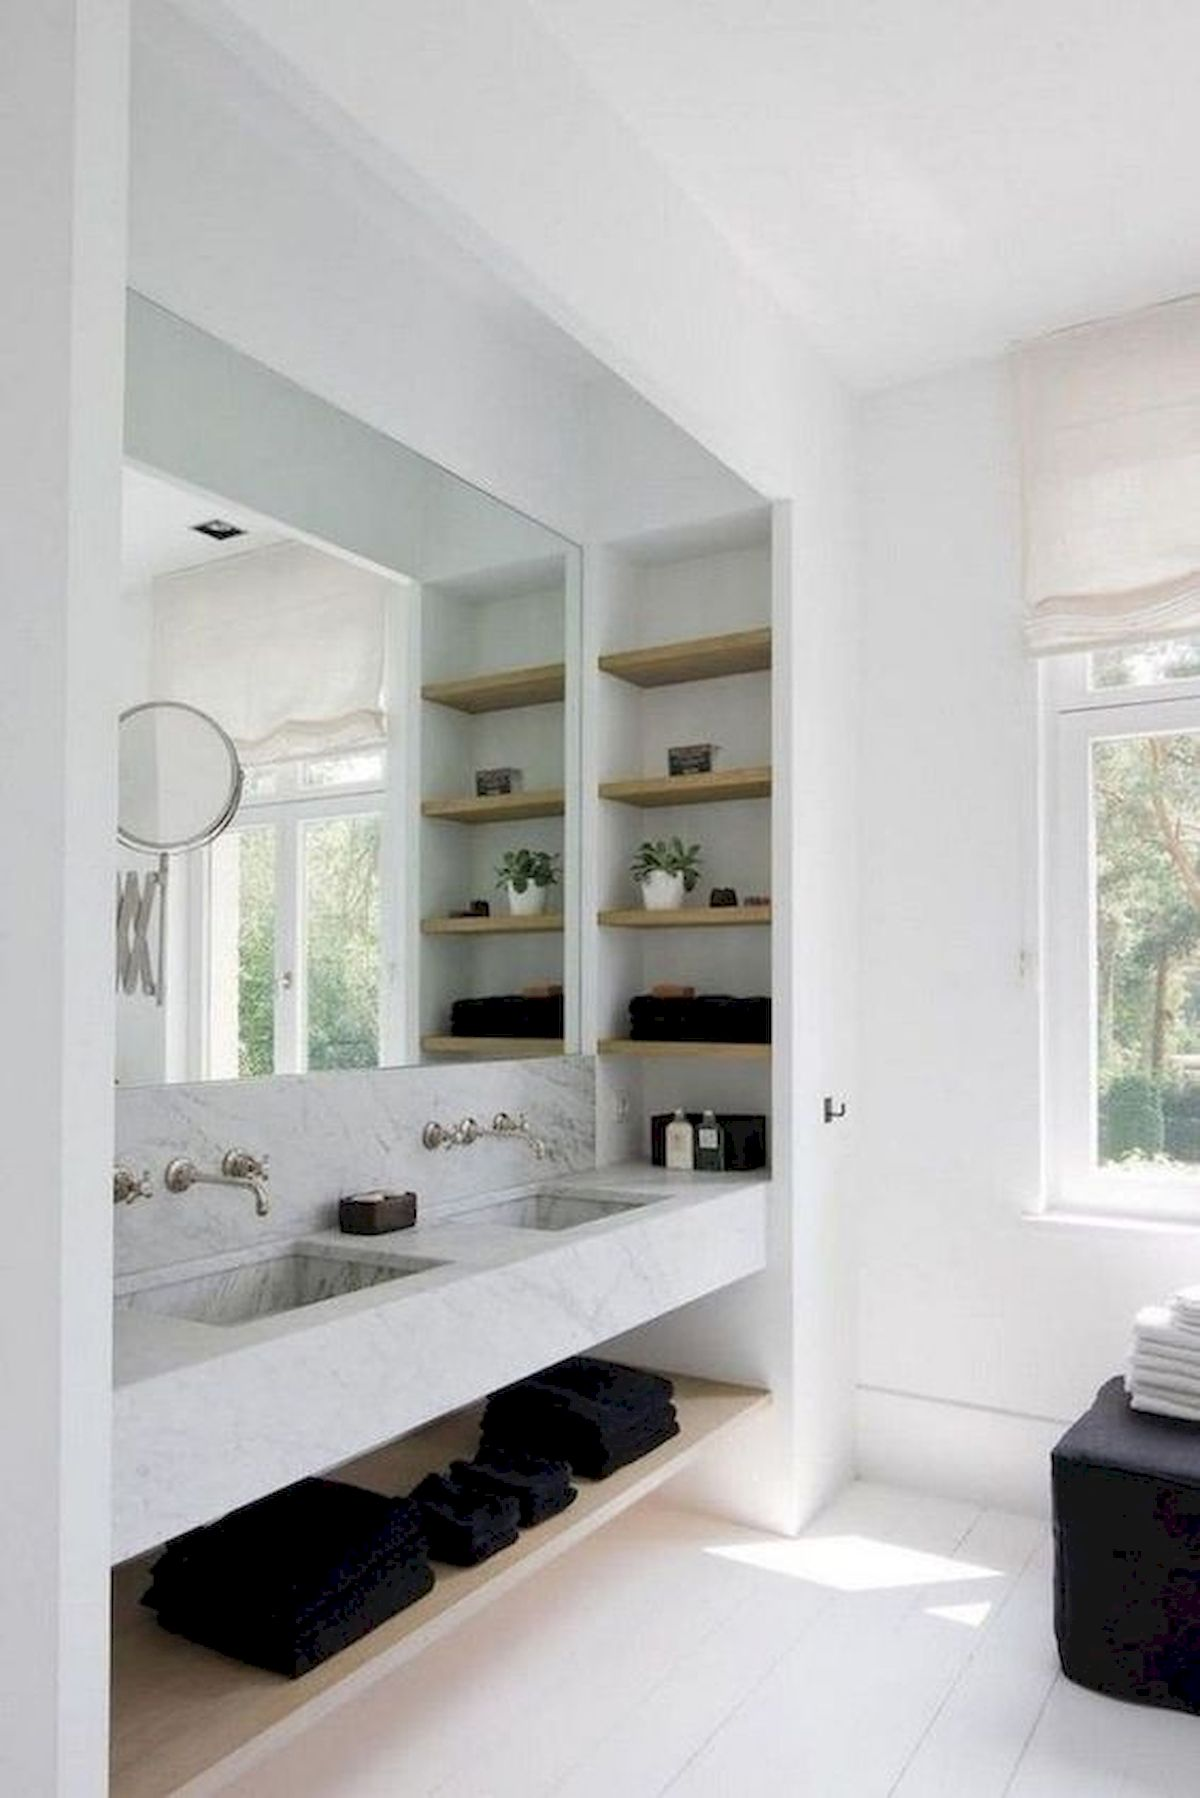 50 Best DIY Storage Design Ideas To Maximize Your Small Bathroom Space (6)